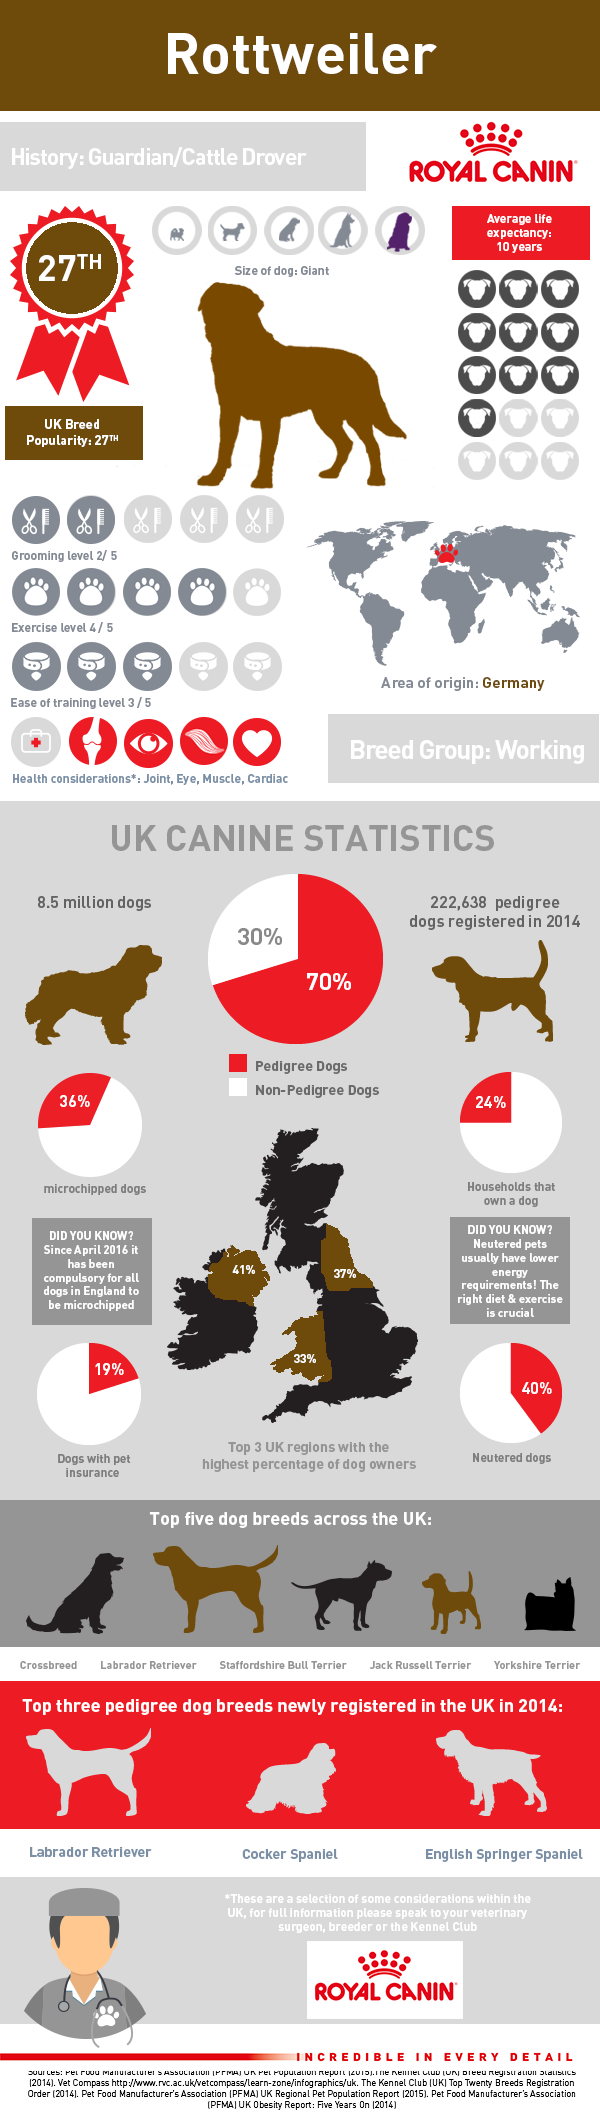 infographic-rottweiler